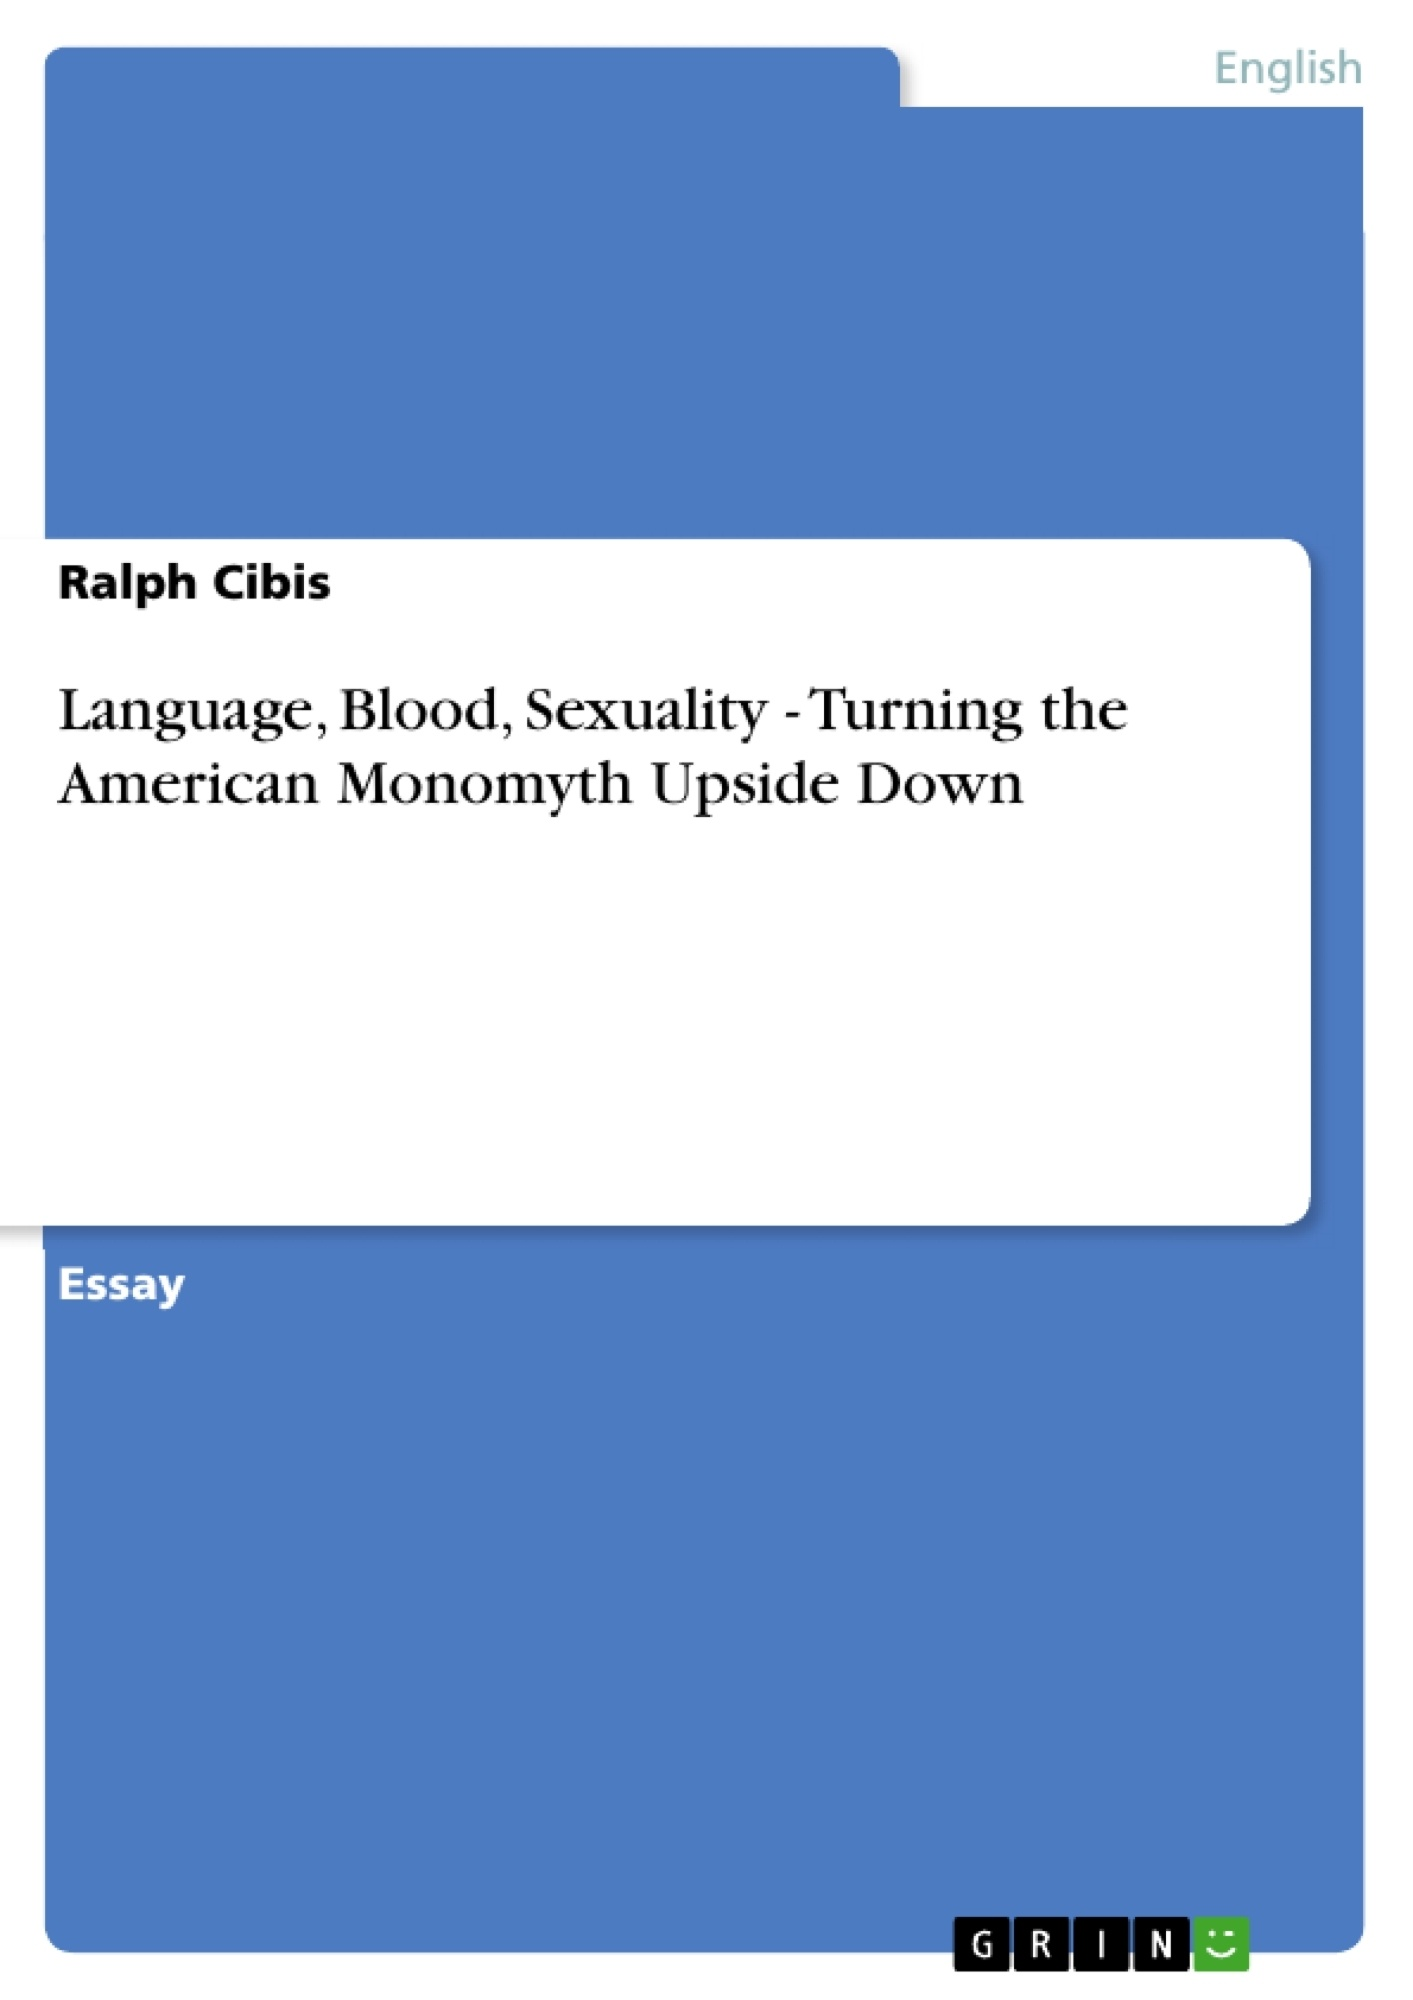 Title: Language, Blood, Sexuality - Turning the American Monomyth Upside Down